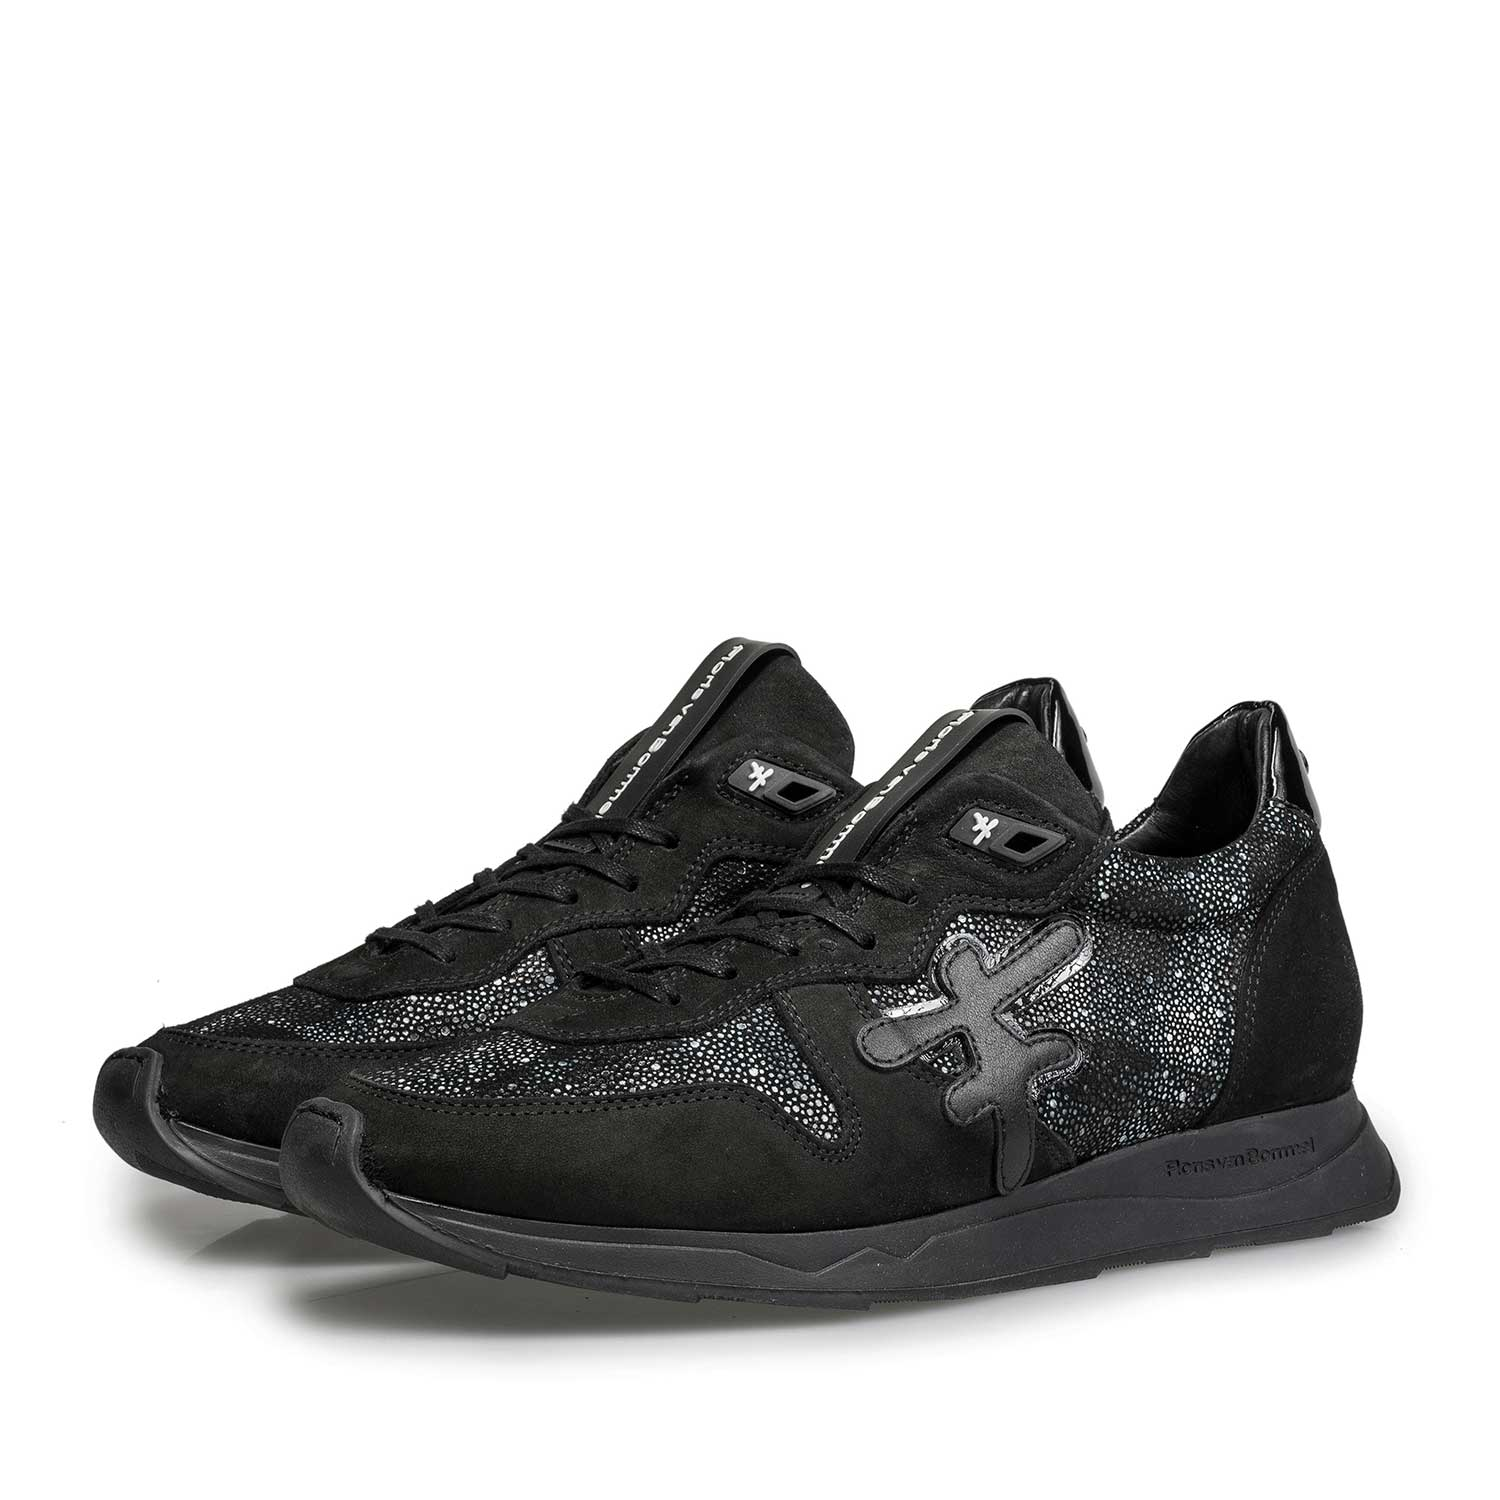 85255/04 - Black leather sneaker with runner's sole